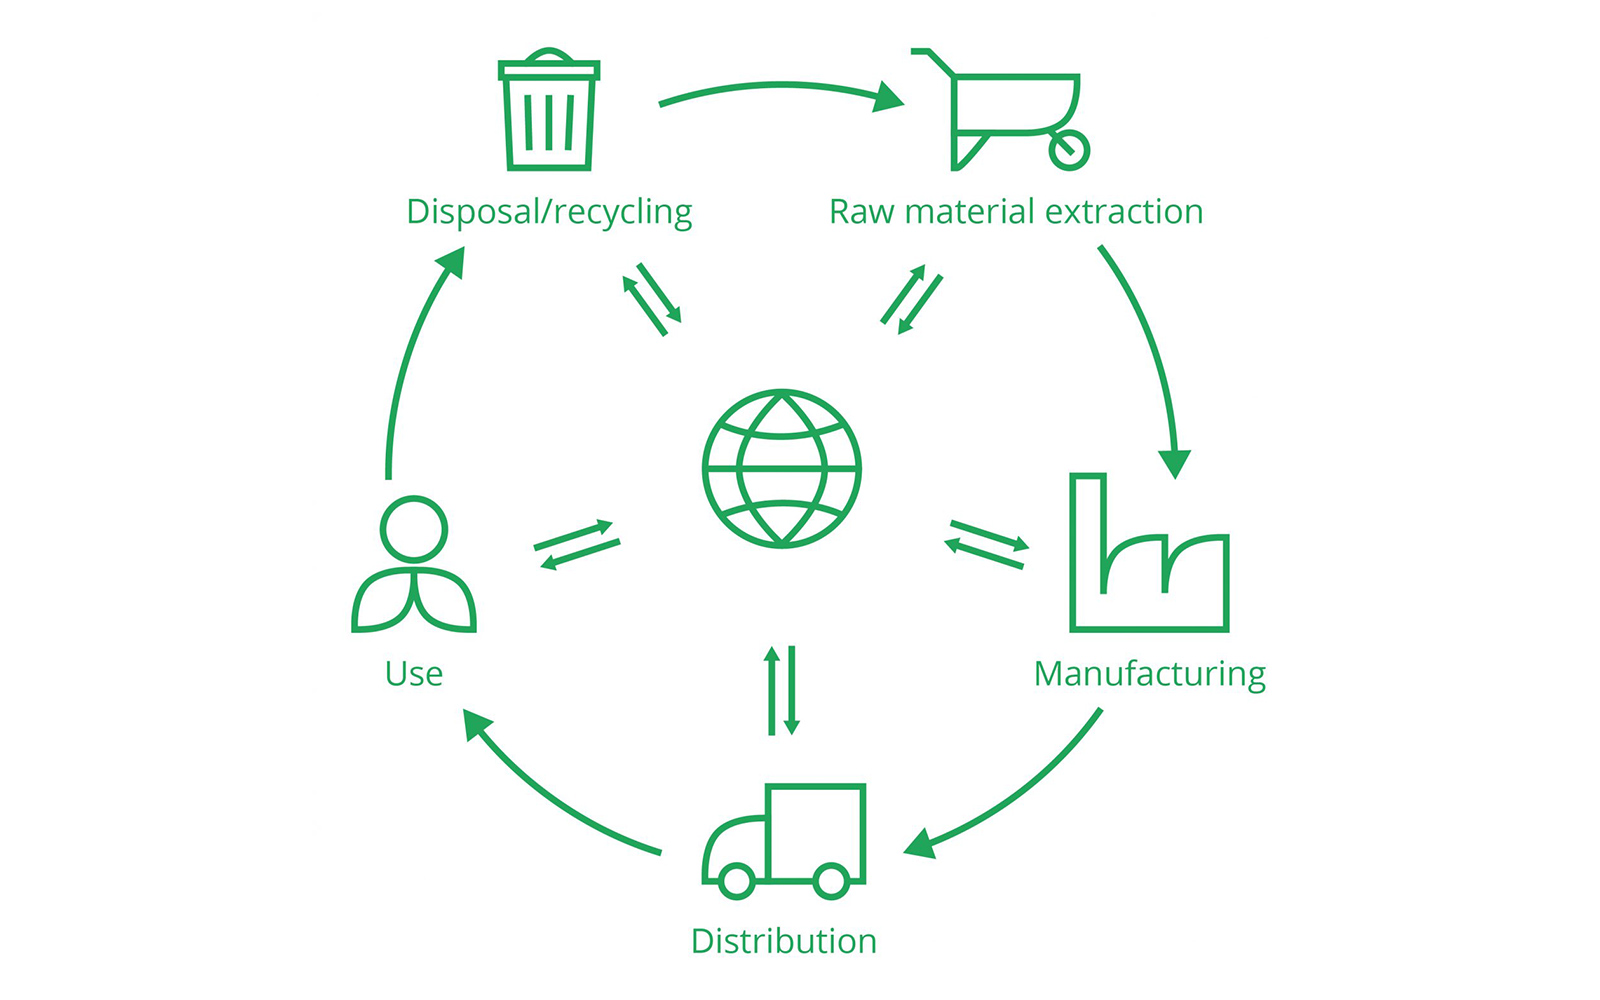 Life cycle assessment stages